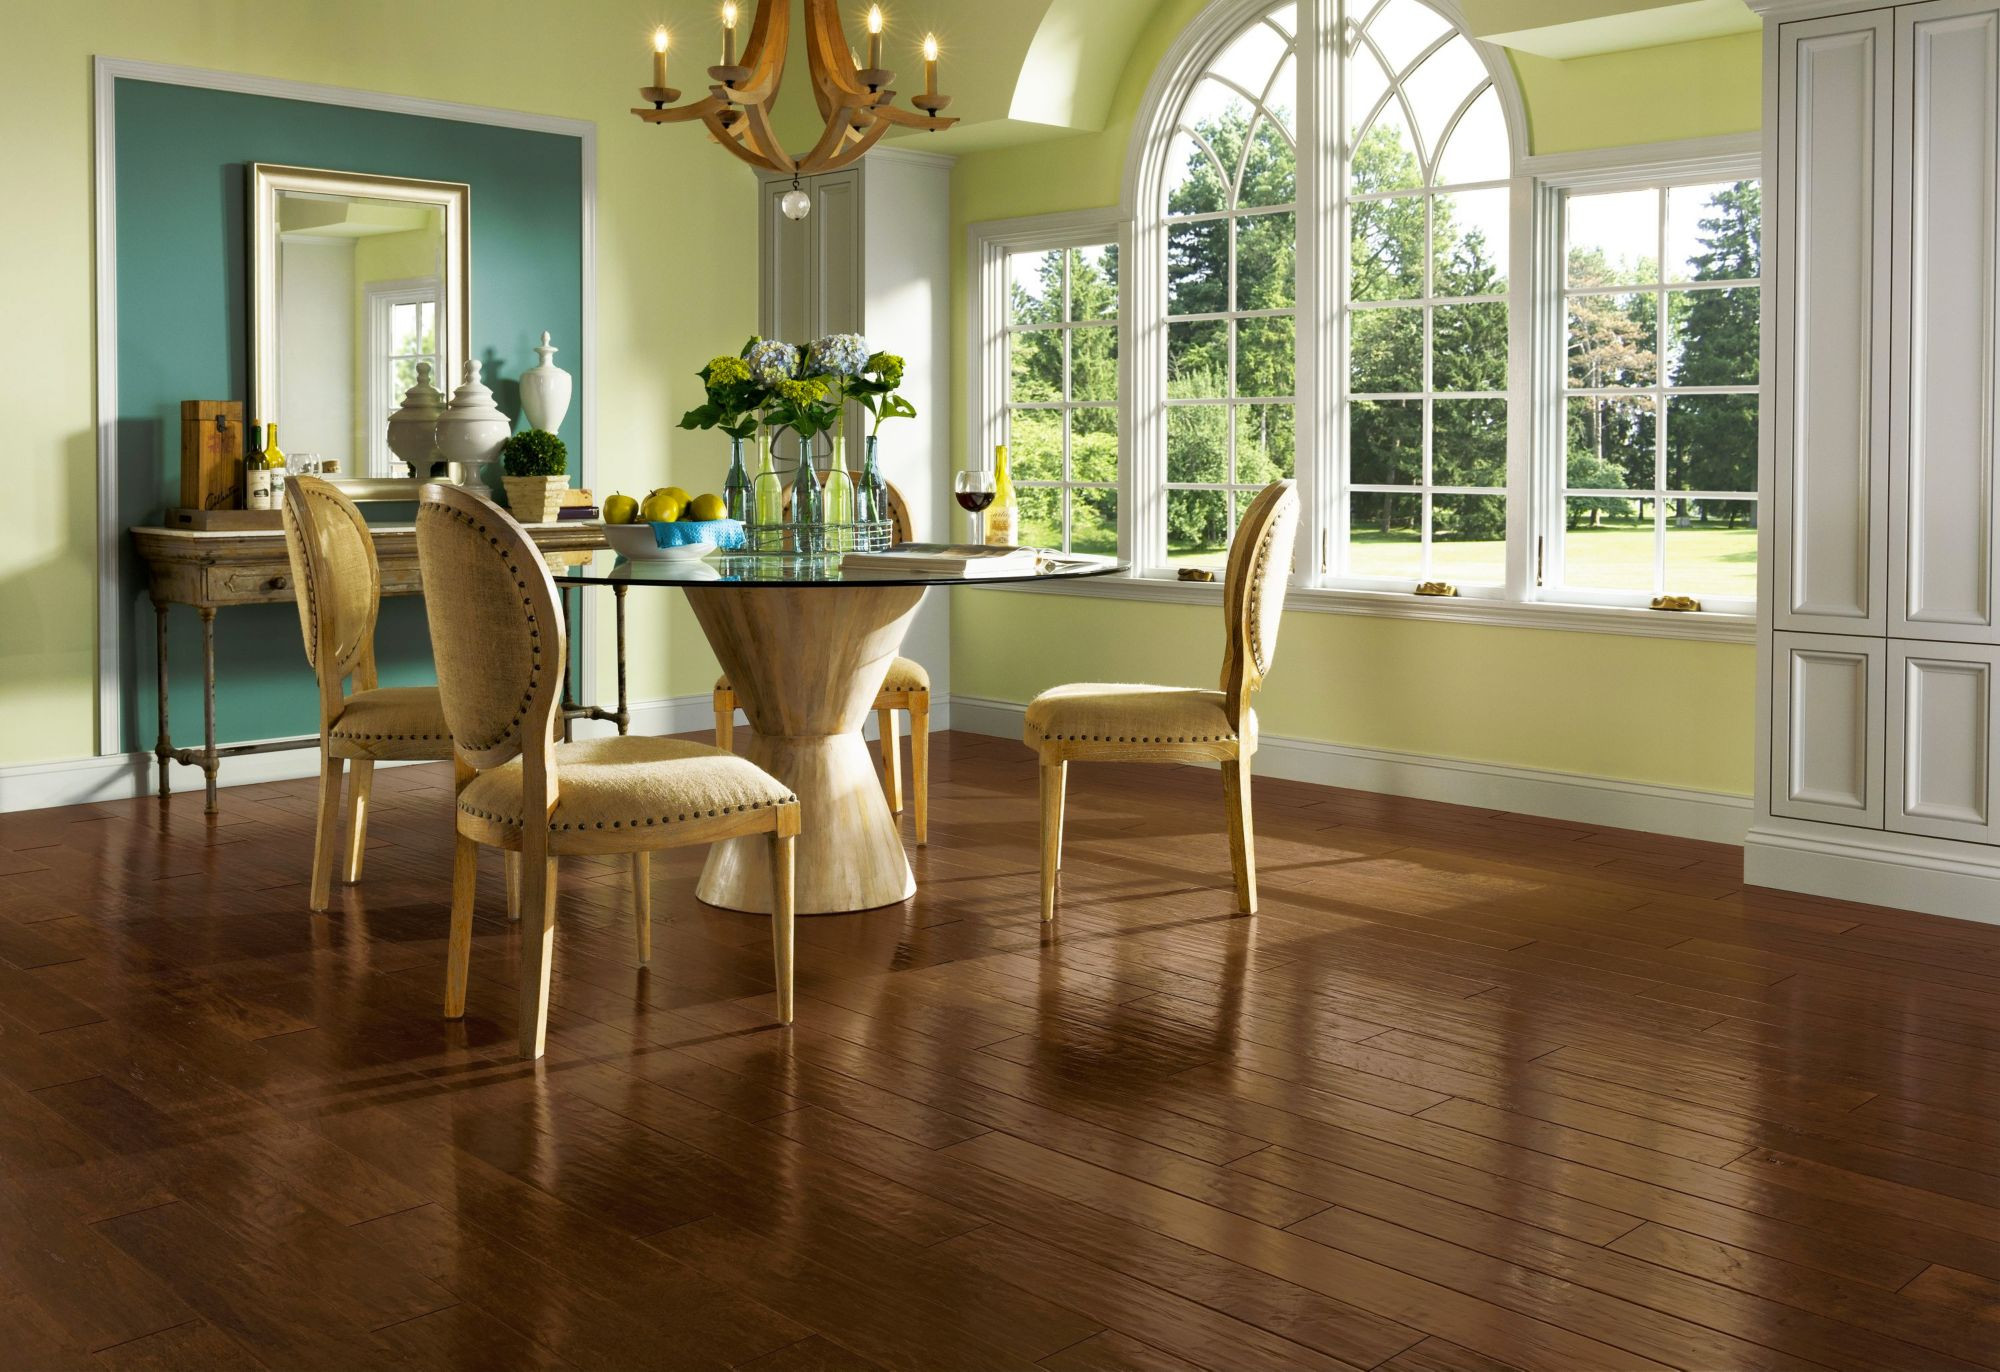 hardwood floor refinishing dayton ohio of specials offers by mcswain carpets and floors in cincinnati oh throughout armstrong american scrape hardwood